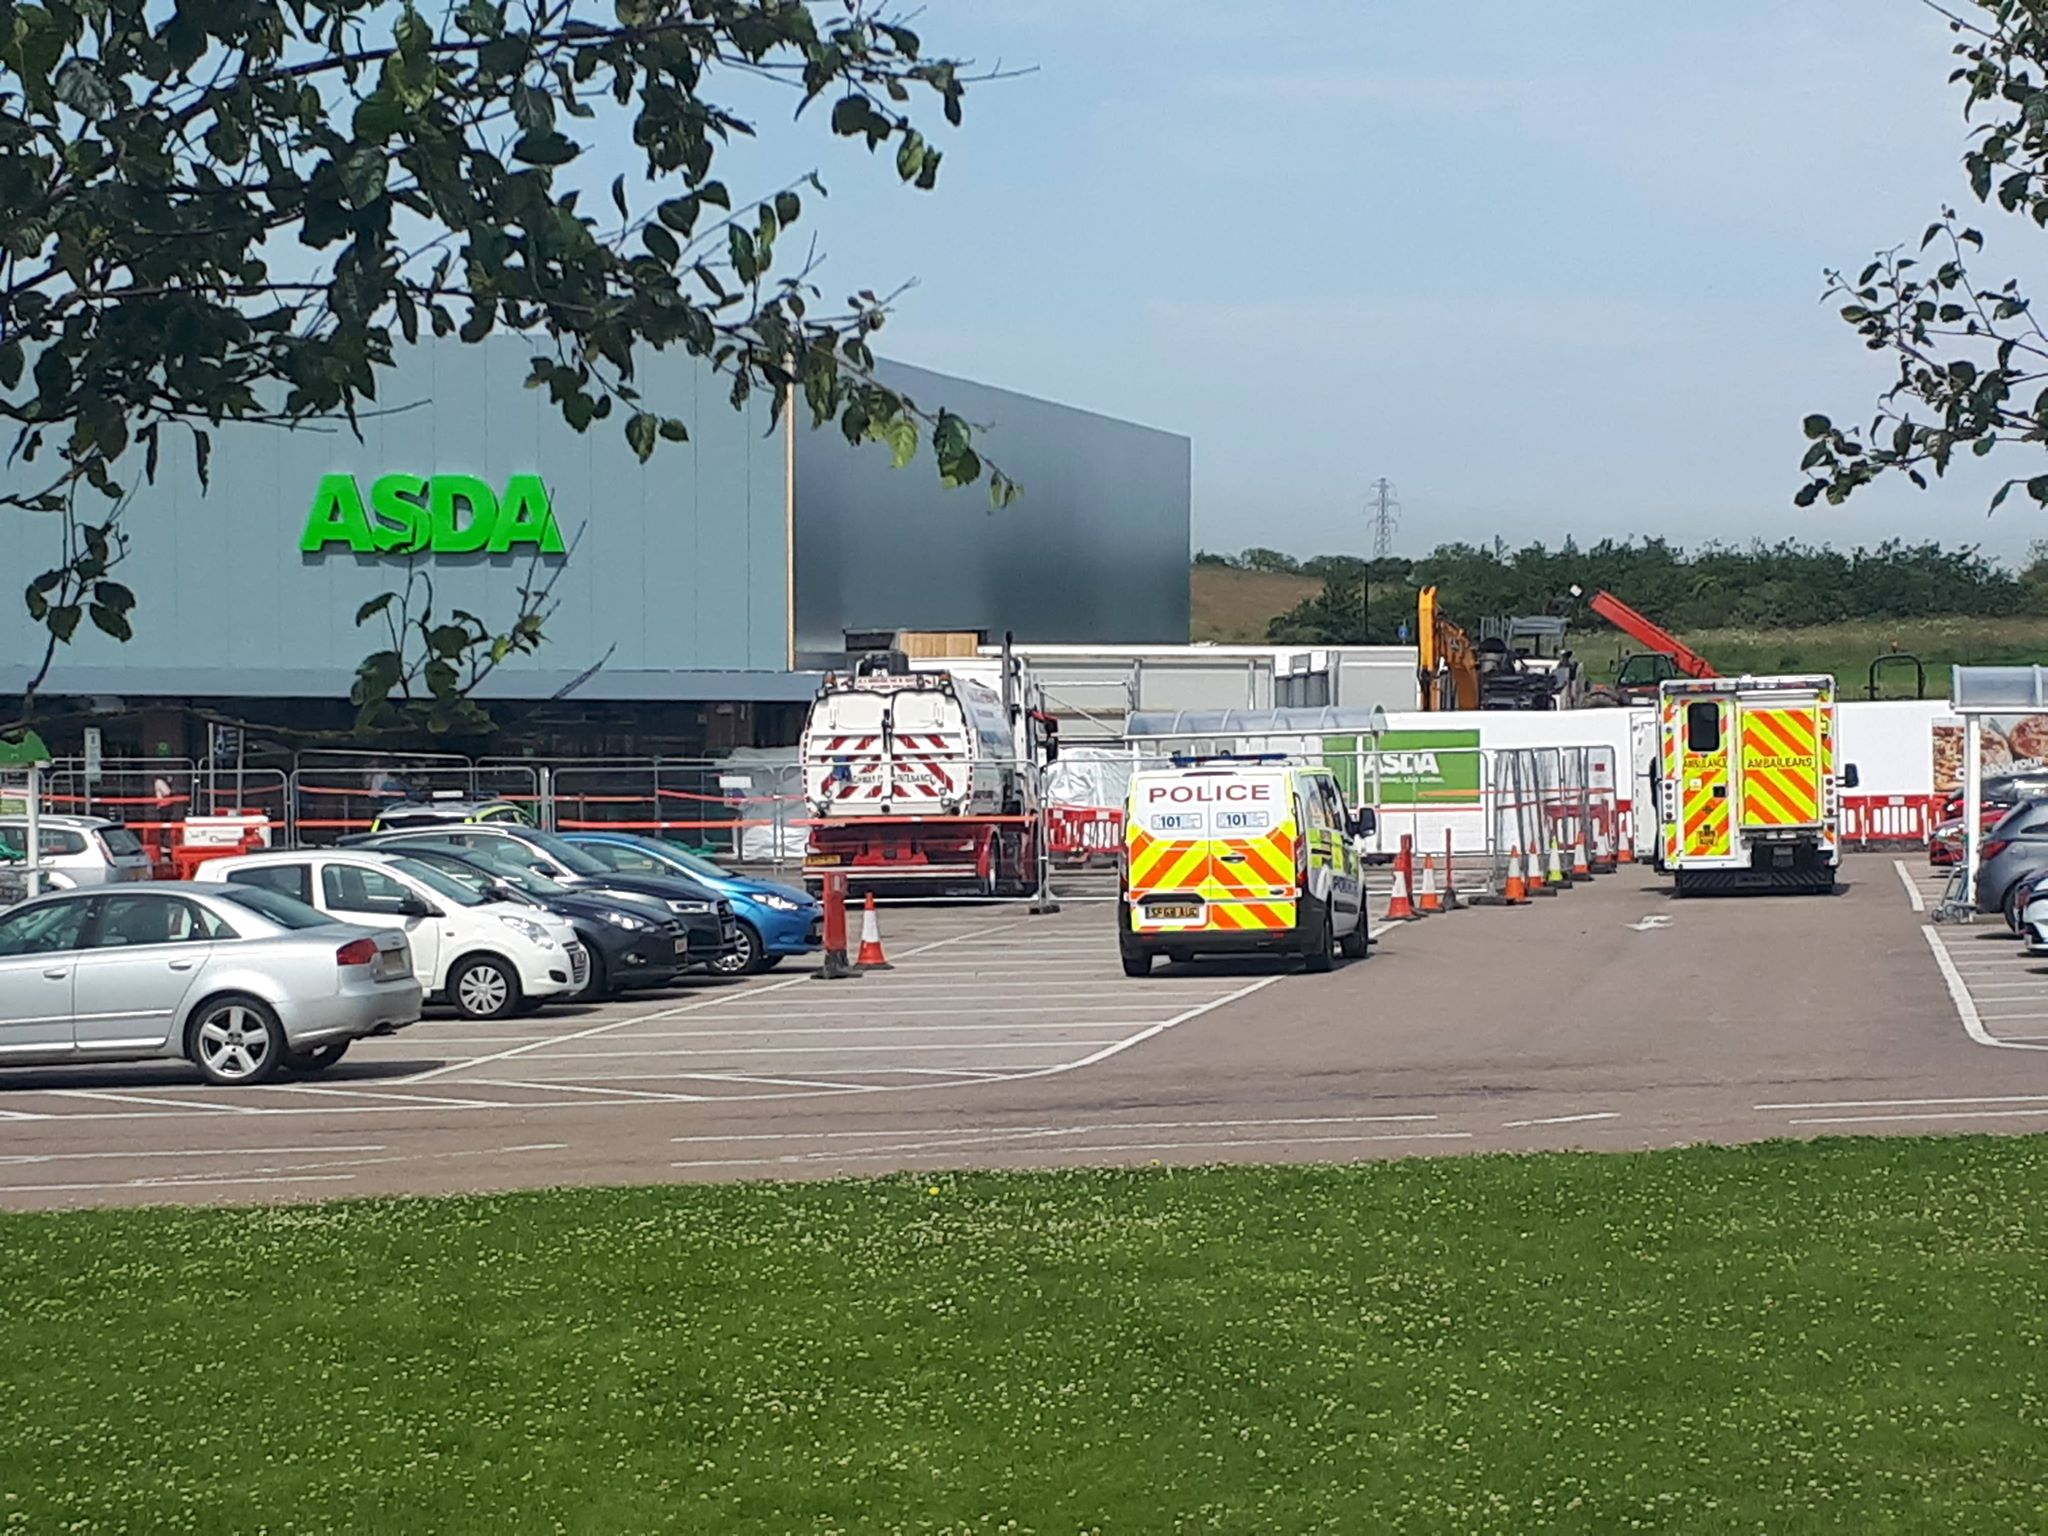 Police and ambulance crews were seen at the Asda in Peterhead